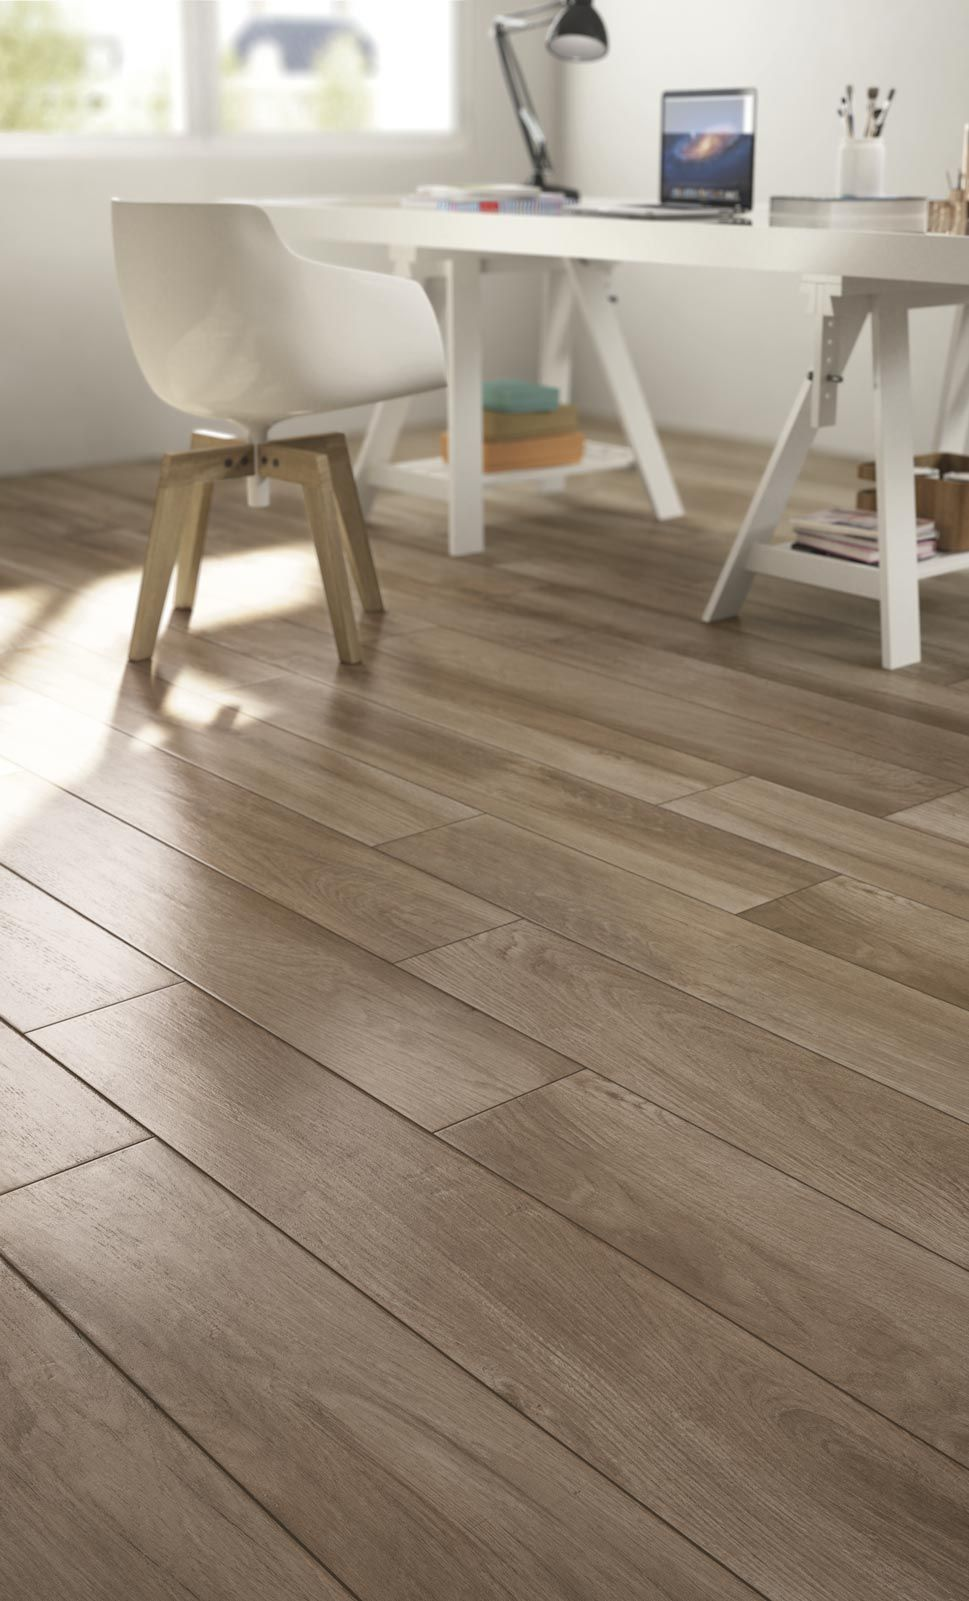 Woodplace wood effect porcelain stoneware ragno tiles available on all the flooring by ragno woodplace at the best price guaranteed discover ragno woodplace sughero cm wood effect with all its features dailygadgetfo Choice Image